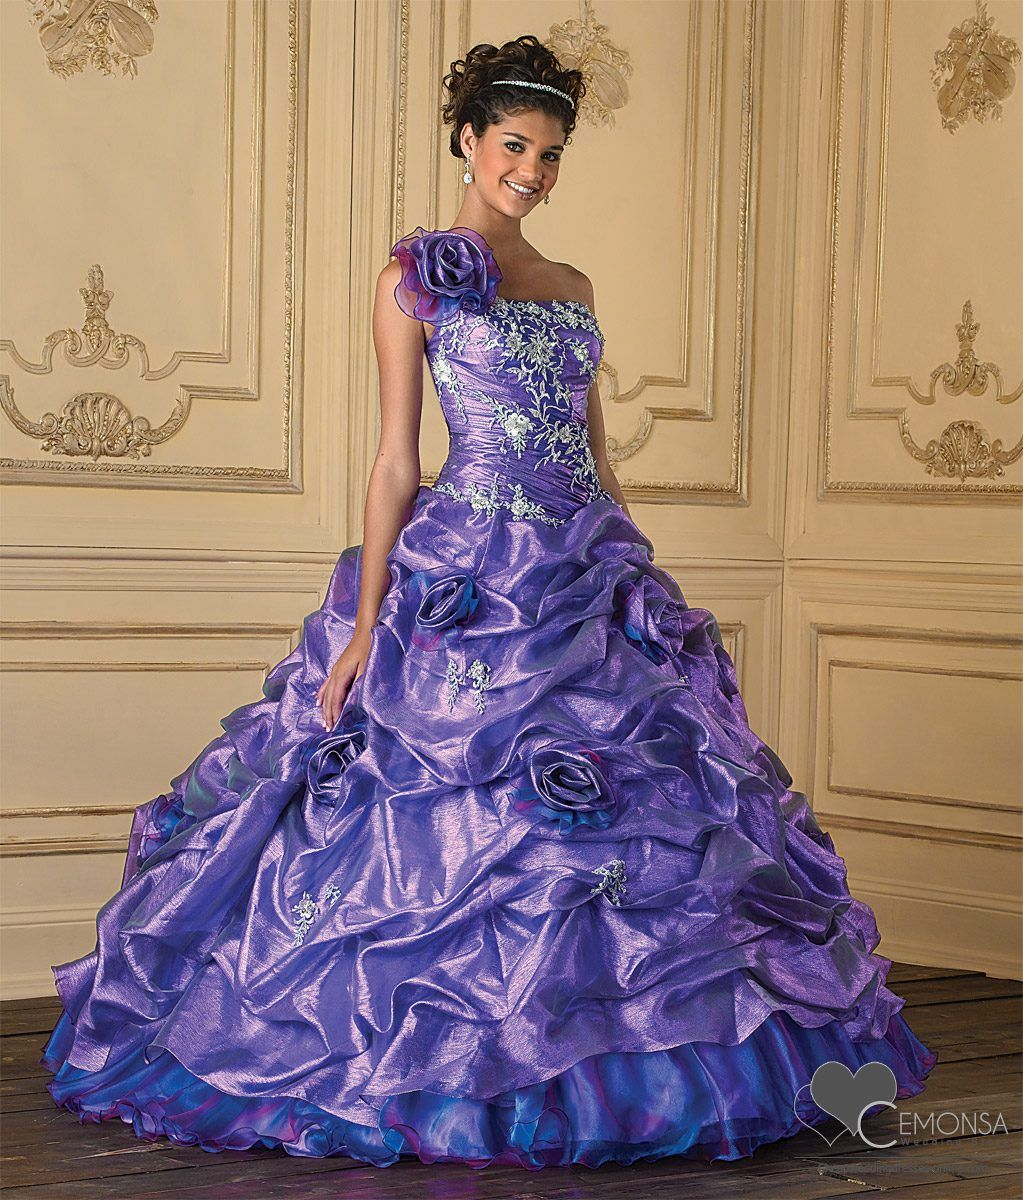 Lavendar wedding gowns lavender ball gown wedding gown with